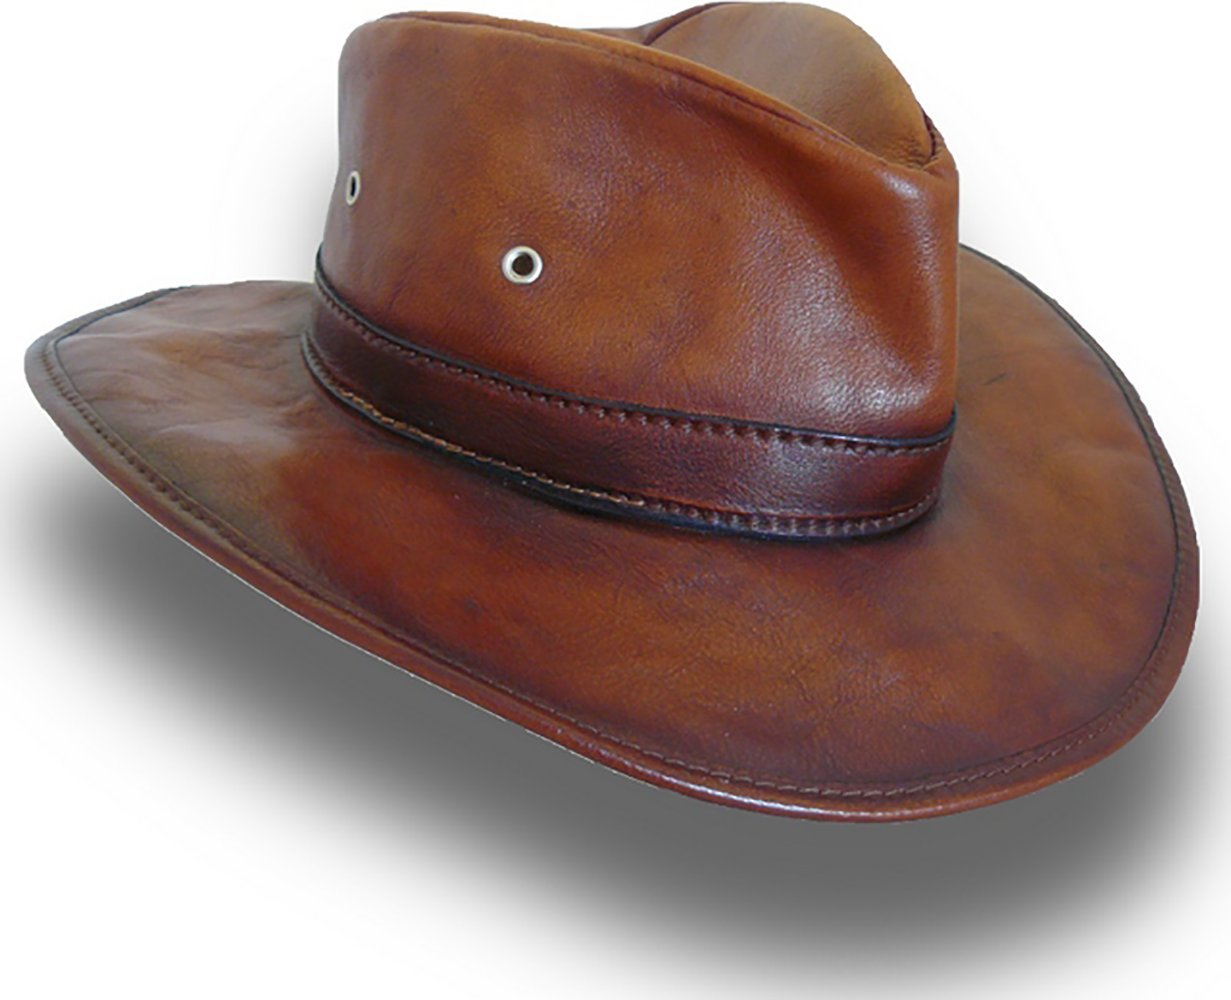 Pratesi Unisex [Personalized Initials Embossing] Italian Leather Cagliostro Western Hat 57 cm - 22 in - 7-1/4 Fitted Size in Brown